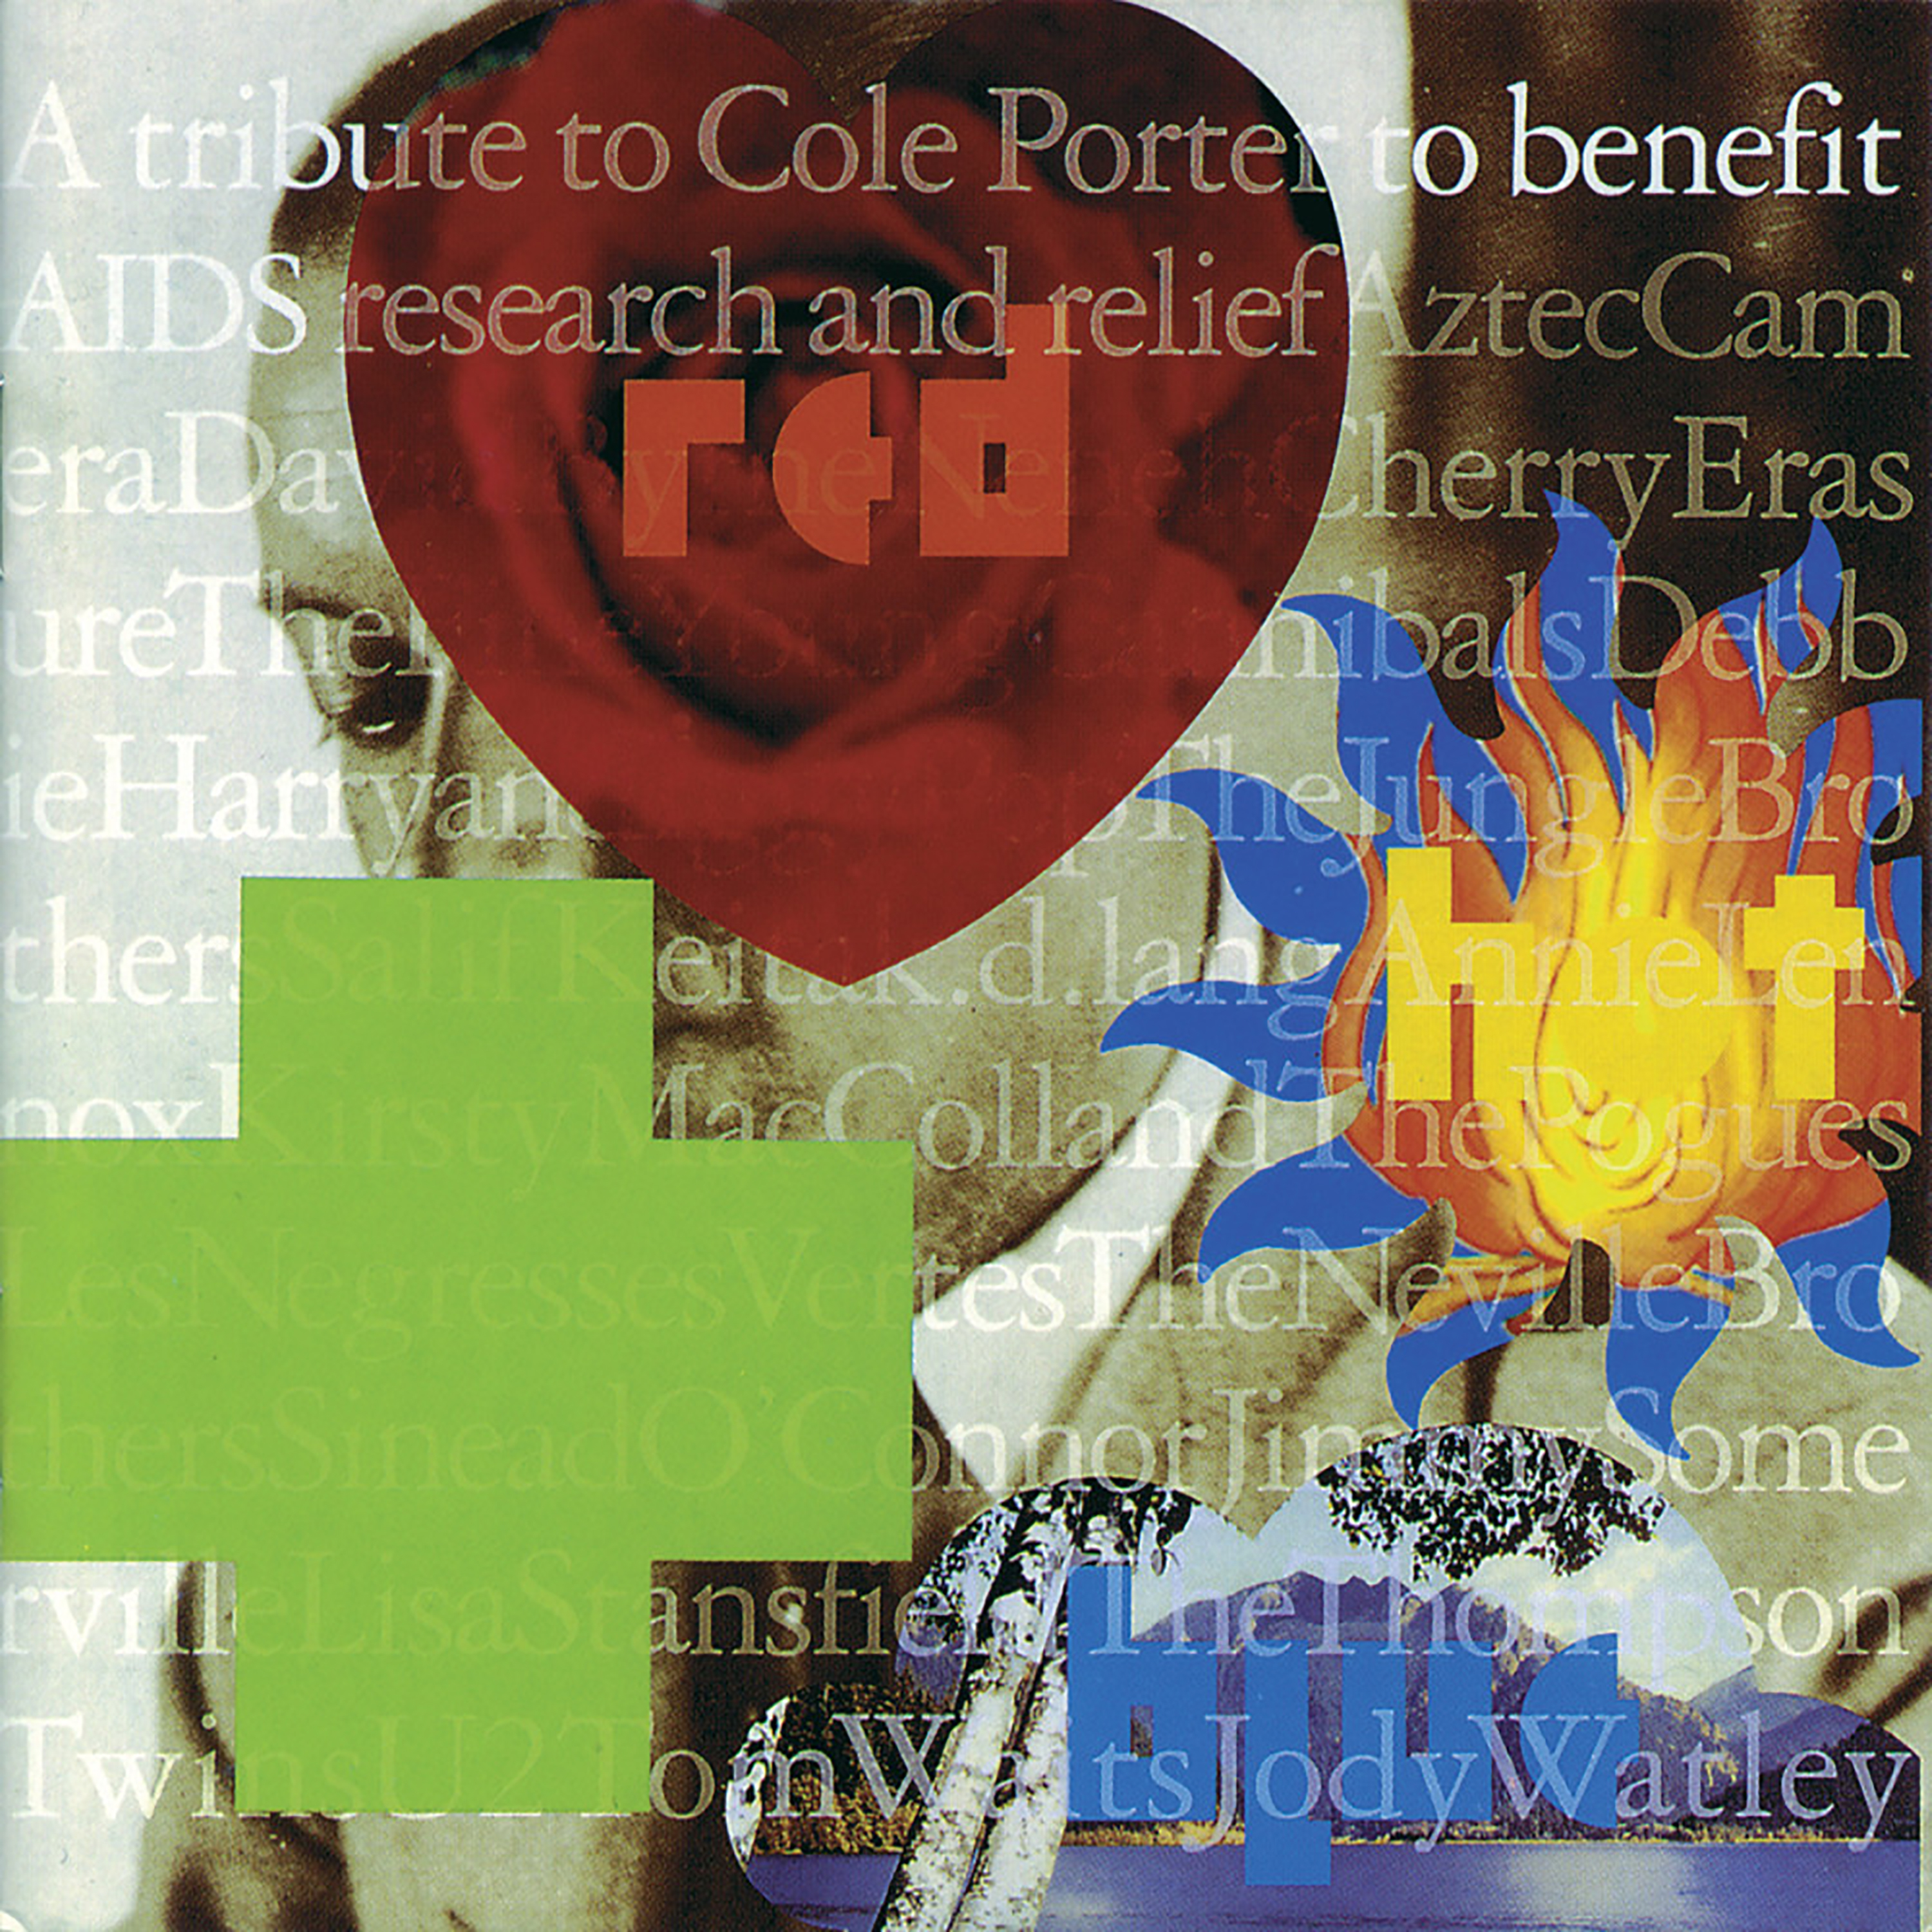 Red Hot & Blue A Tribte To Cole Porter